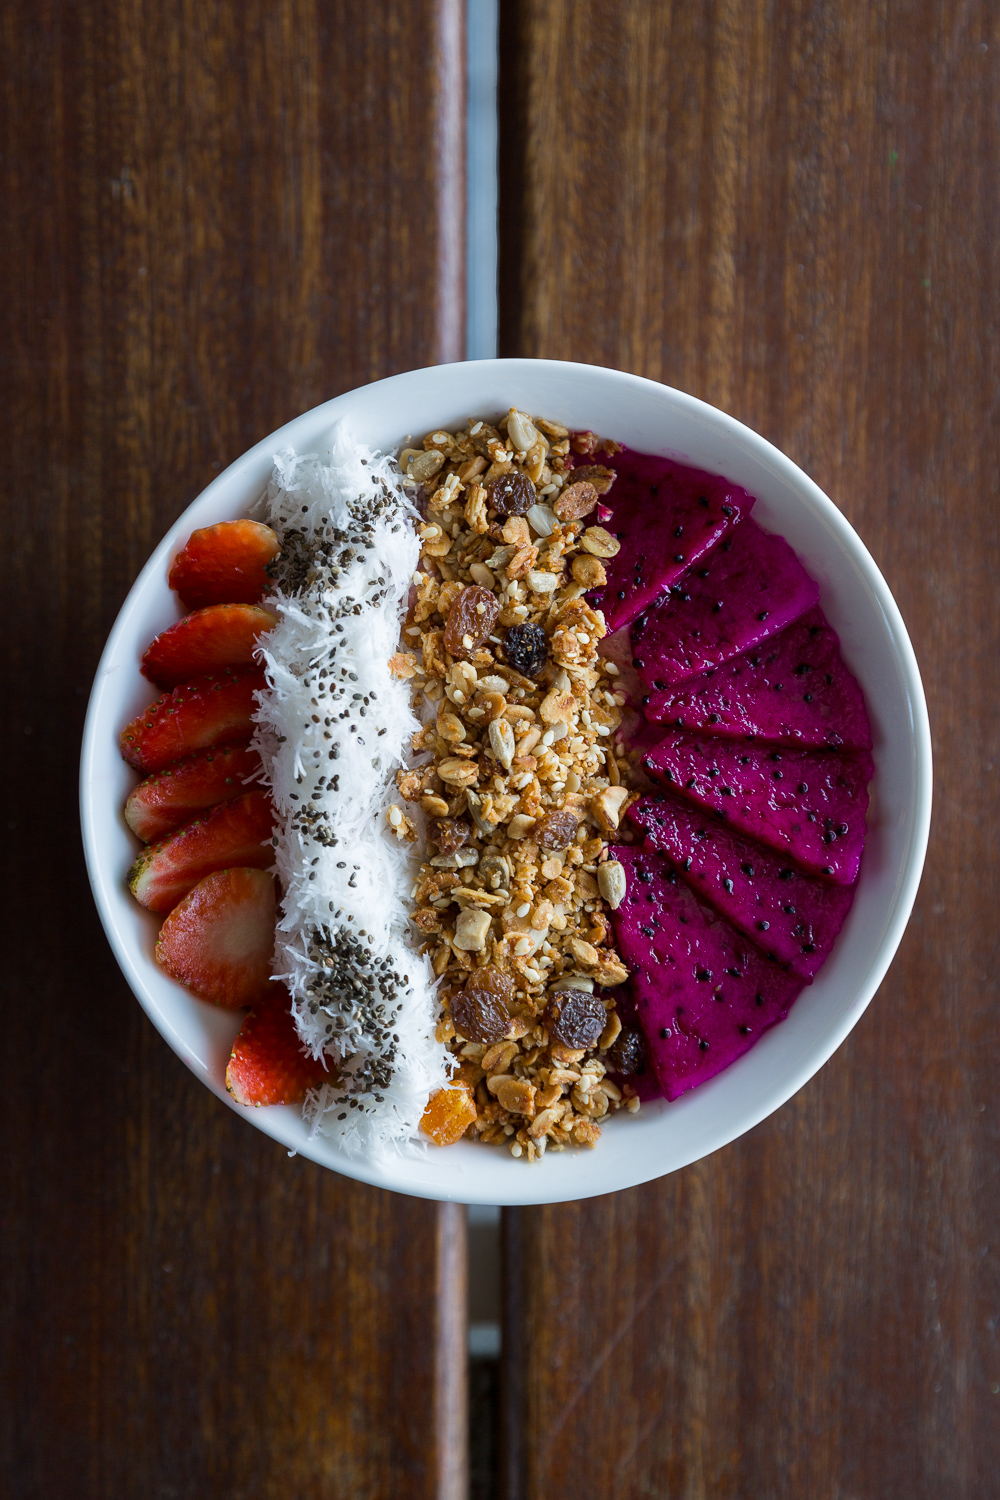 Bowls of Bali and why you need to visit!